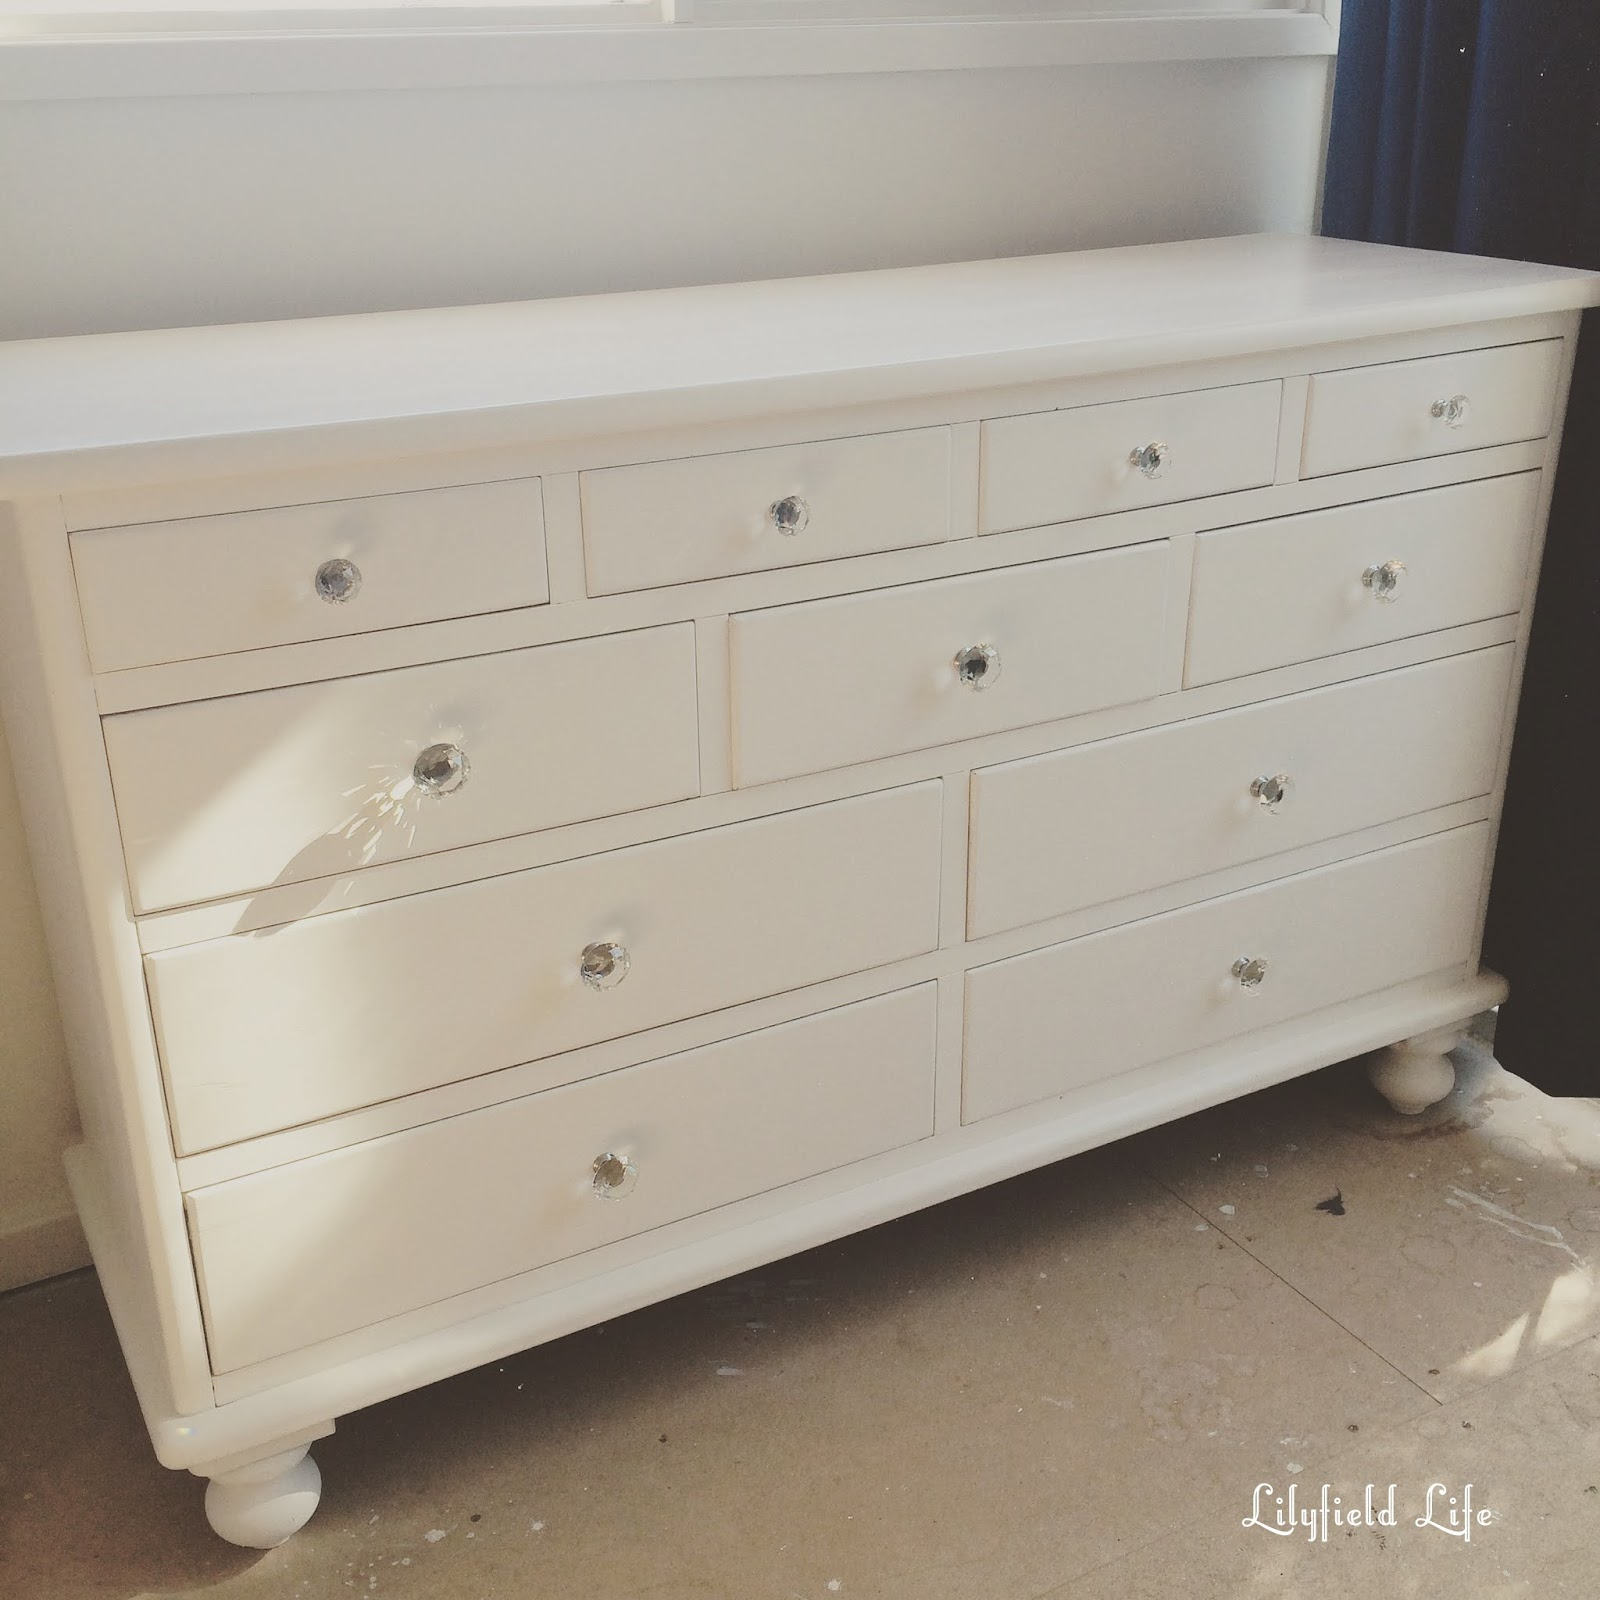 thread junk transforming this cupboard img it furniture to in thrift transformed and